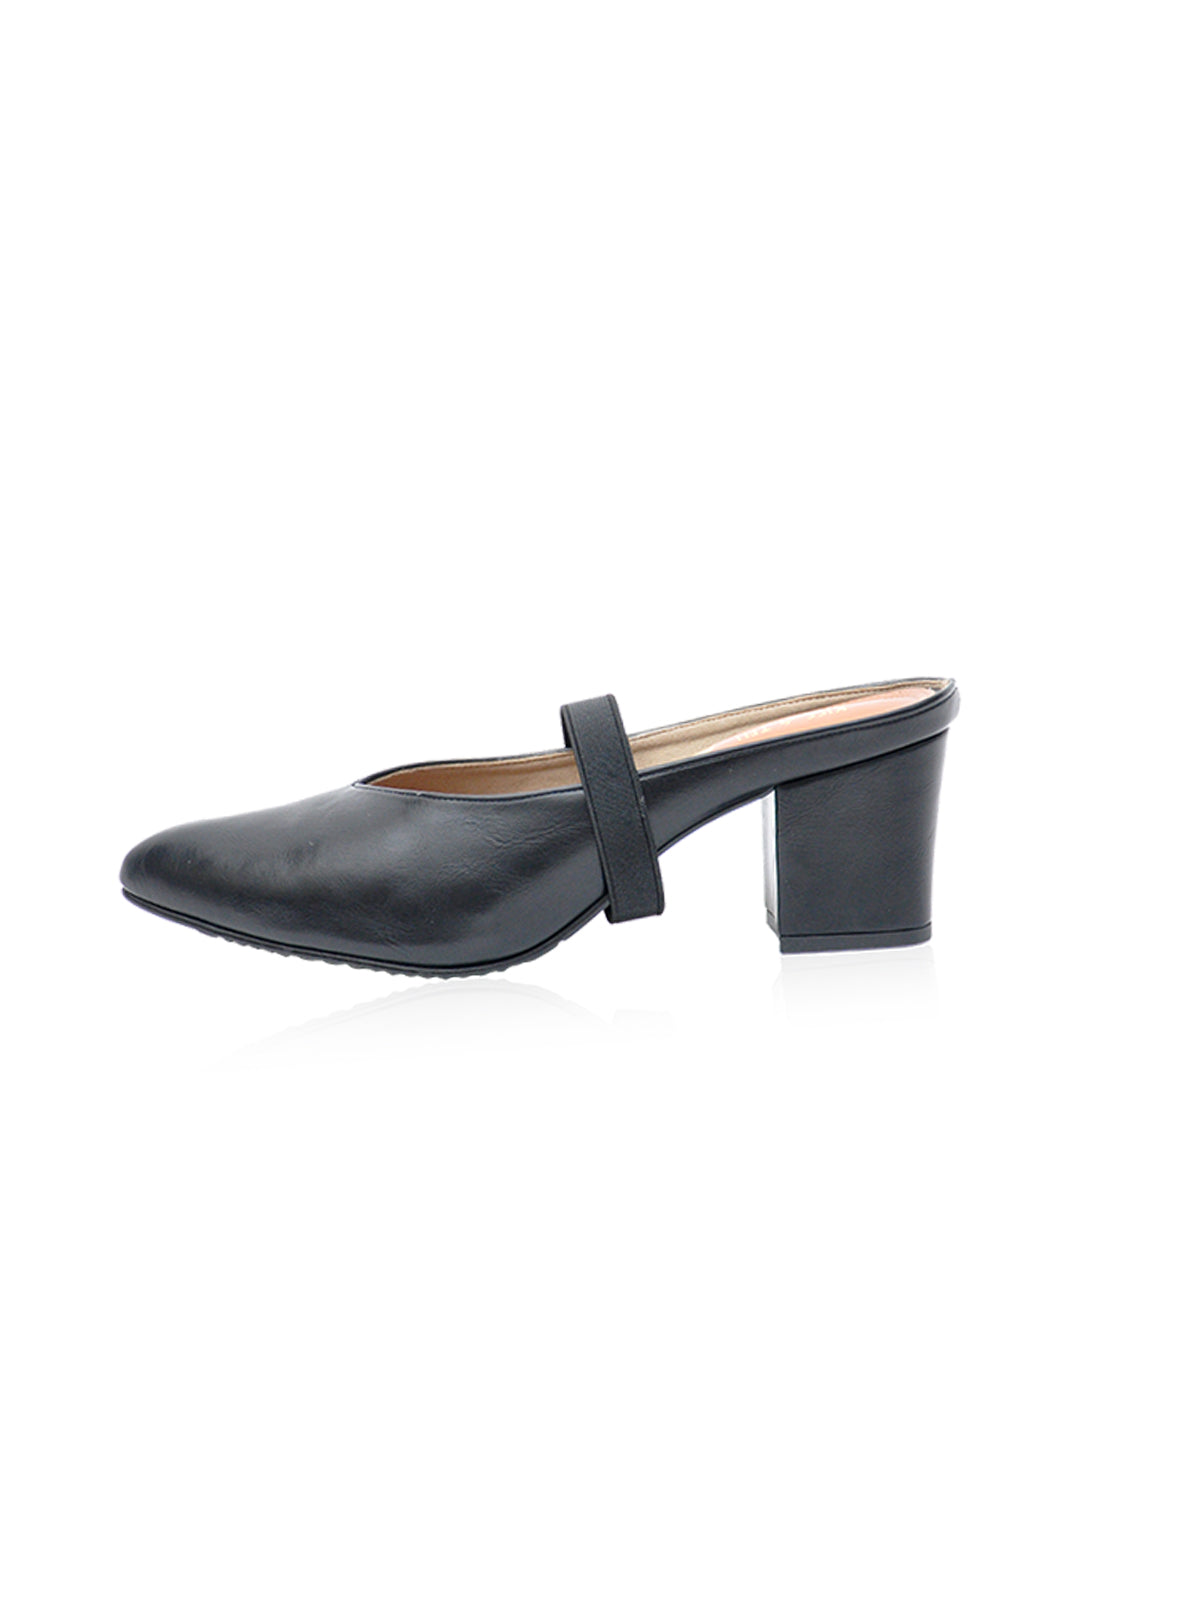 Saddie Mules in Black